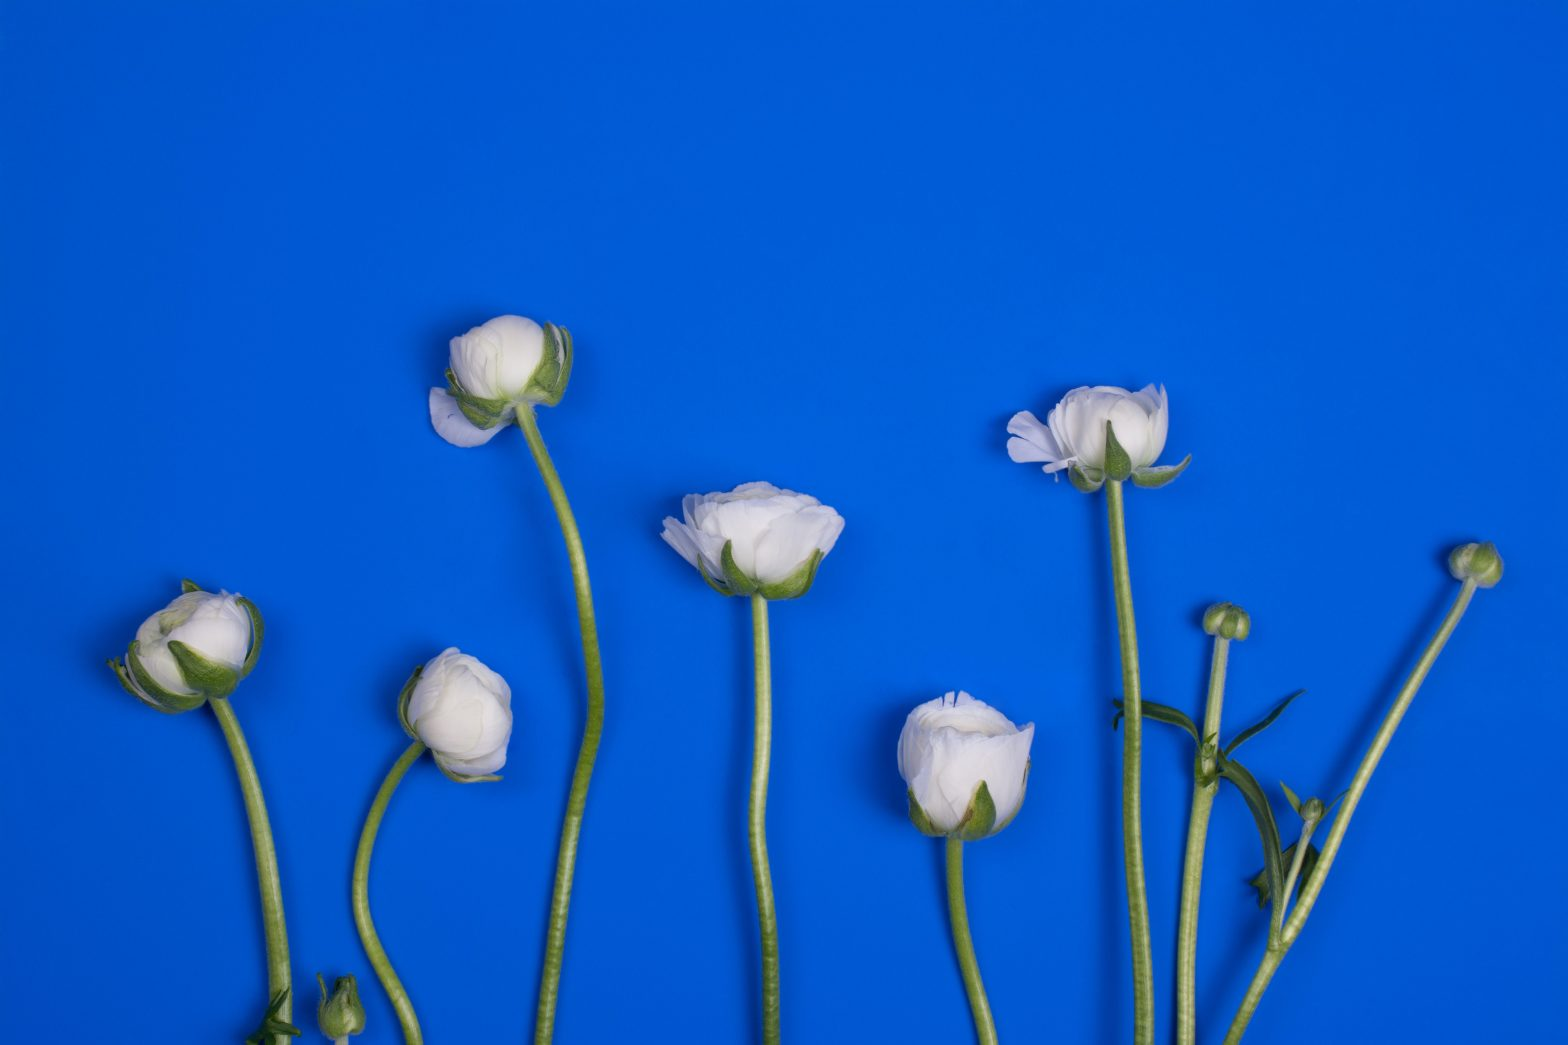 A photo of white flowers in the process of budding and blooming on a blue background